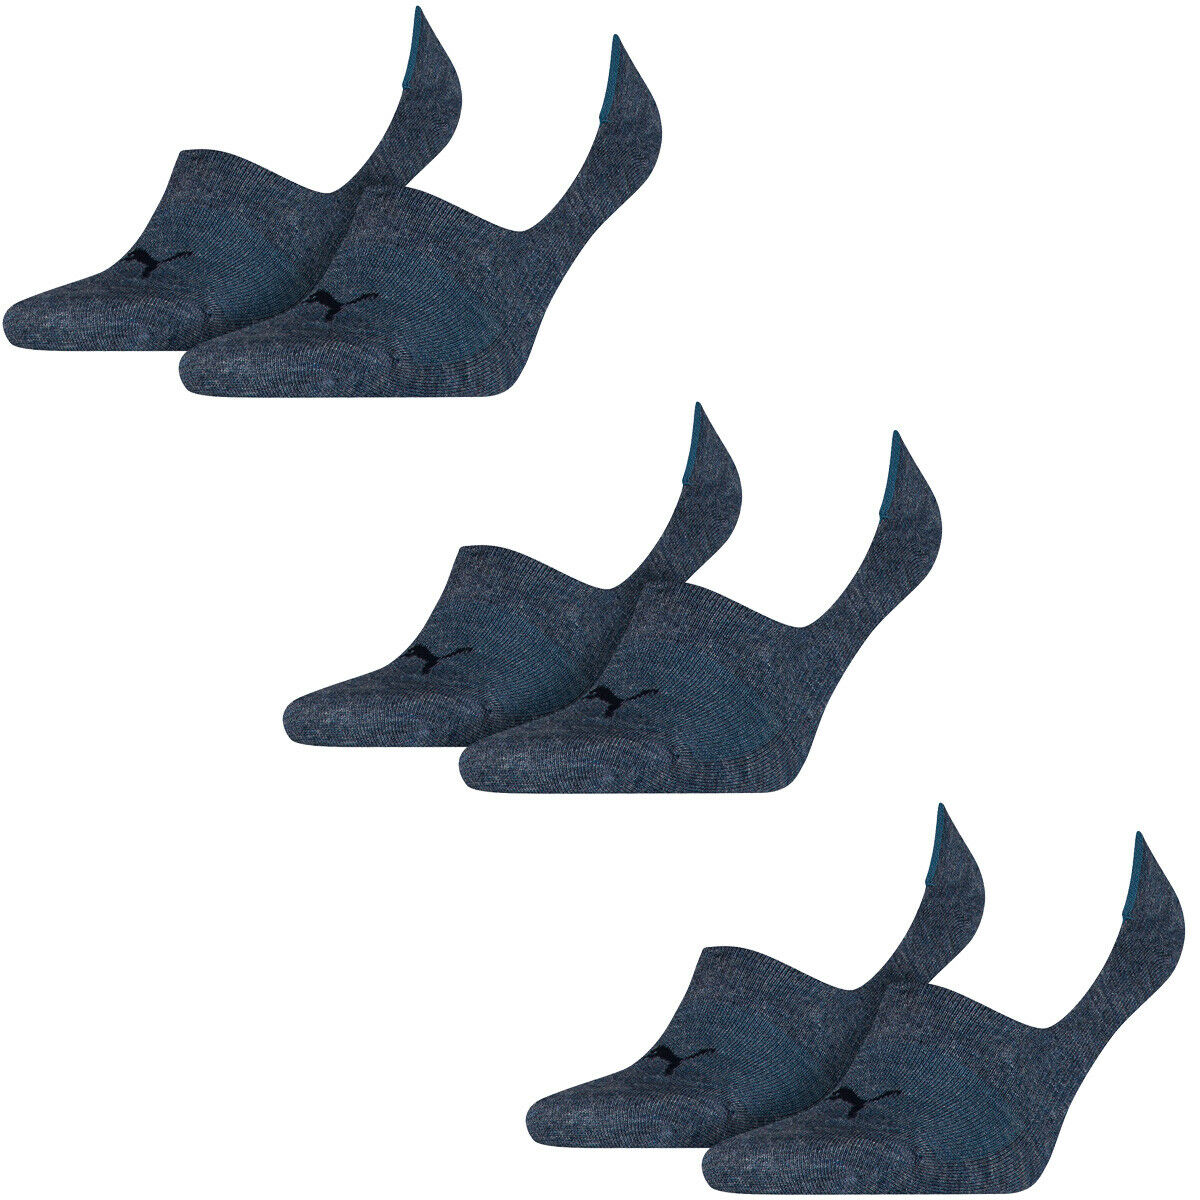 6 Paar Puma Socken Footie Sportsocken Invisible Gr. 35 – 46 Unisex